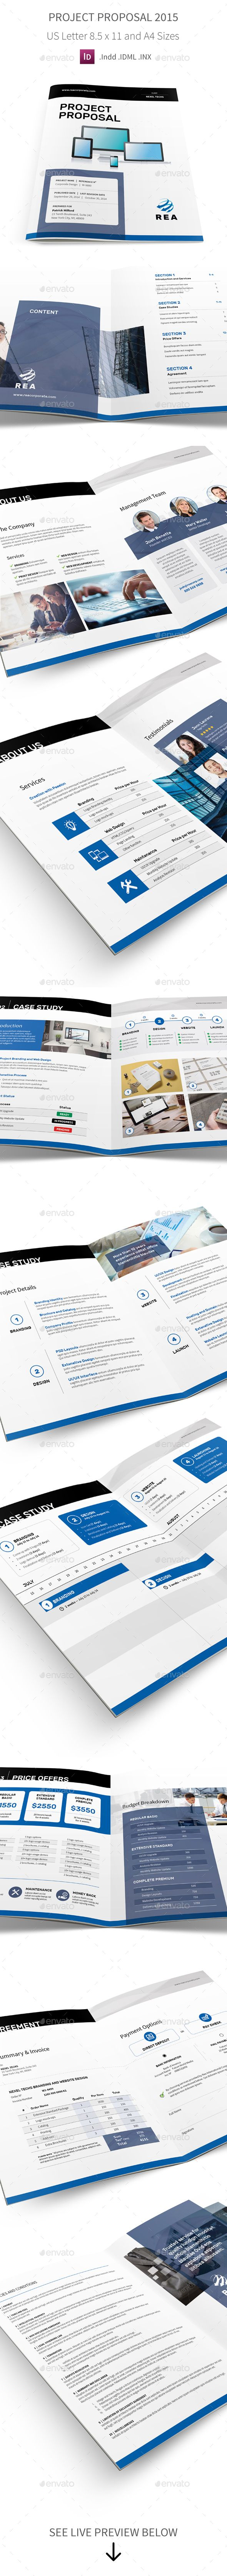 Project Proposal Template  Proposal Templates Project Proposal